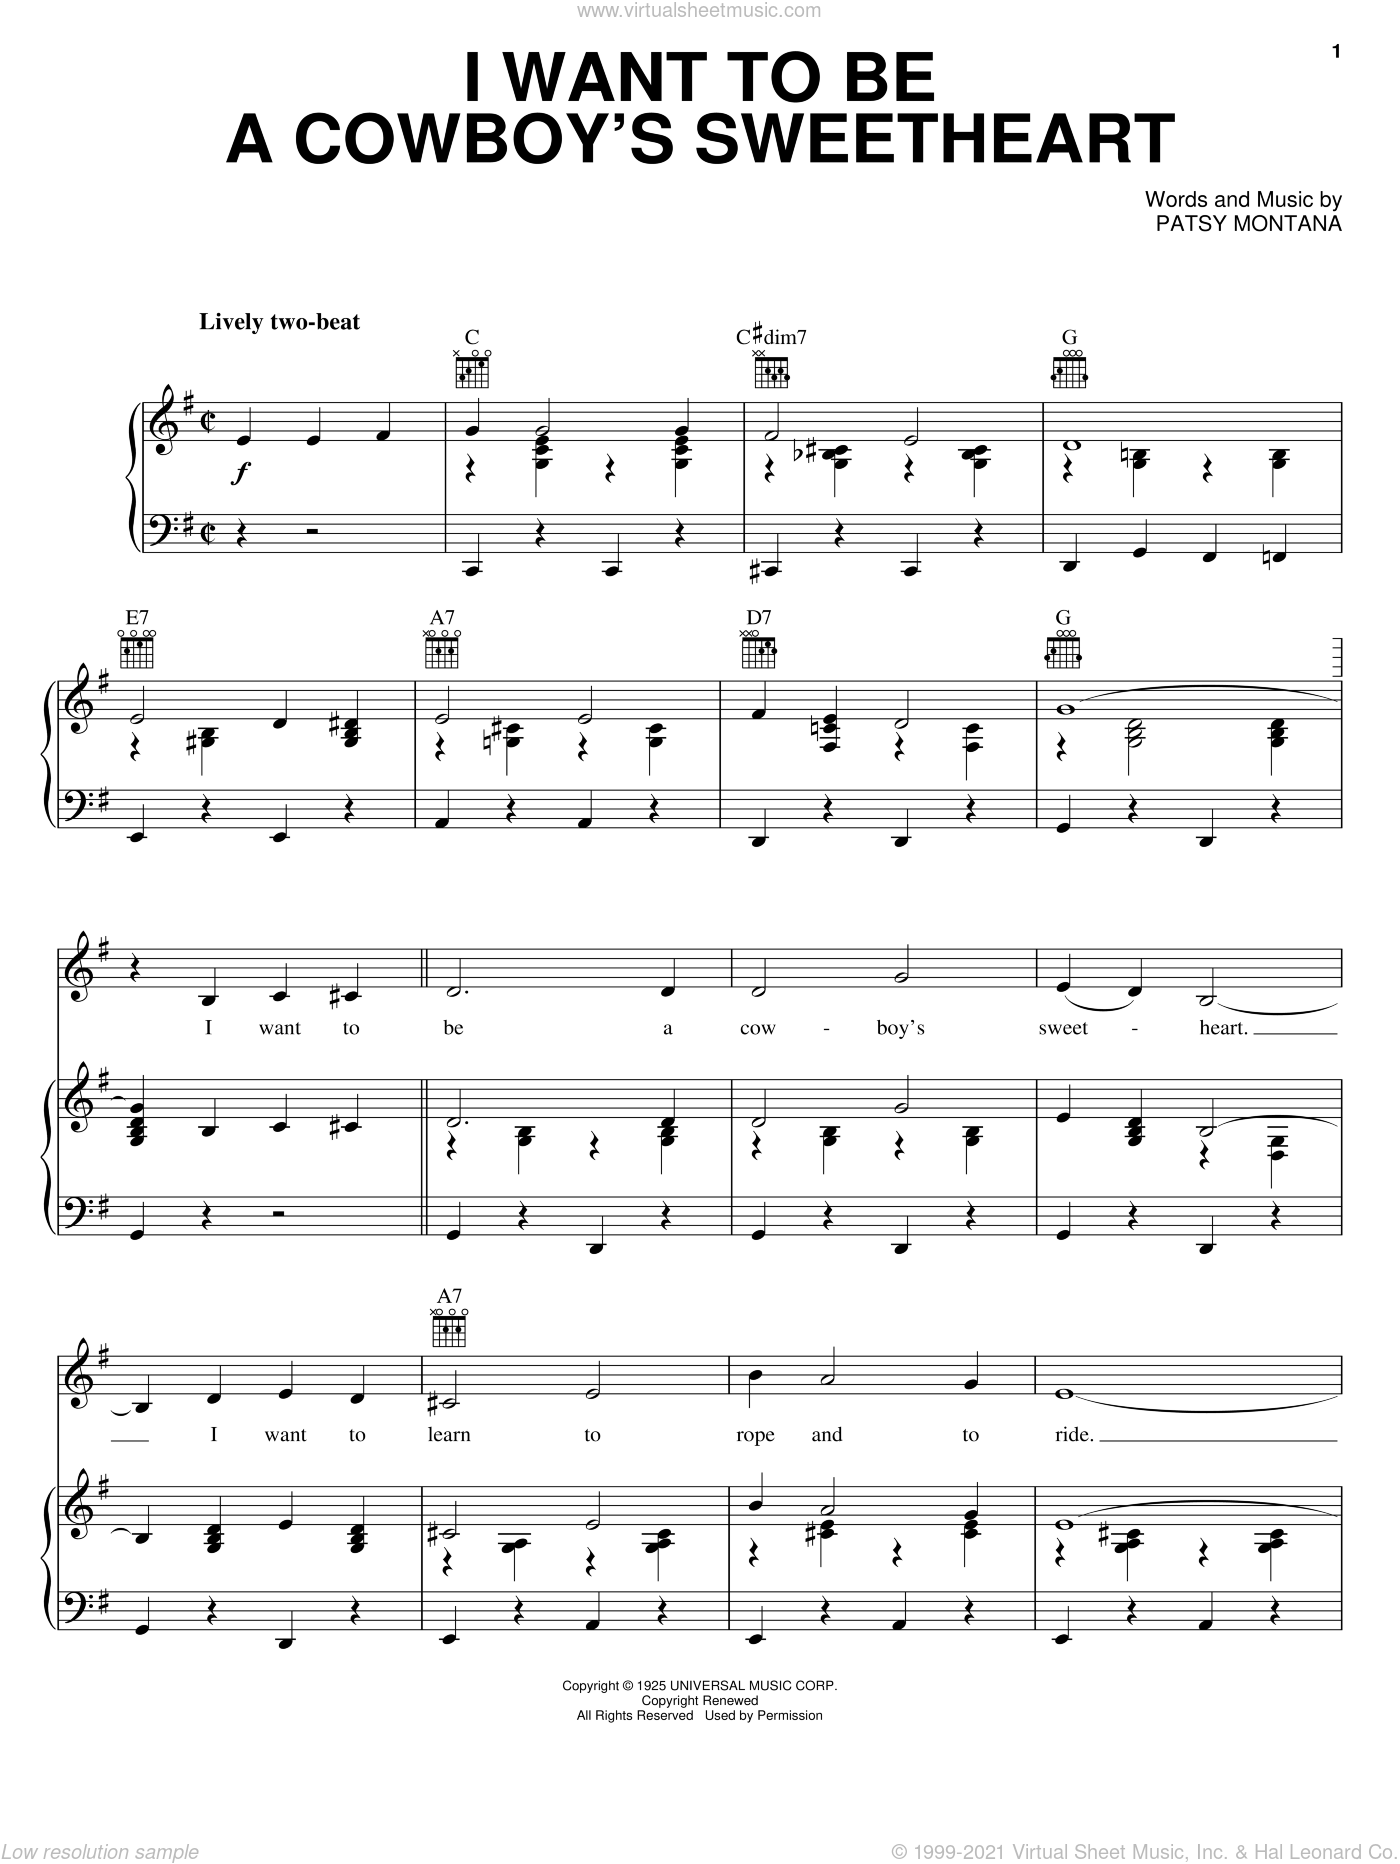 I Want To Be A Cowboy's Sweetheart sheet music for voice, piano or guitar by Patsy Montana and LeAnn Rimes. Score Image Preview.